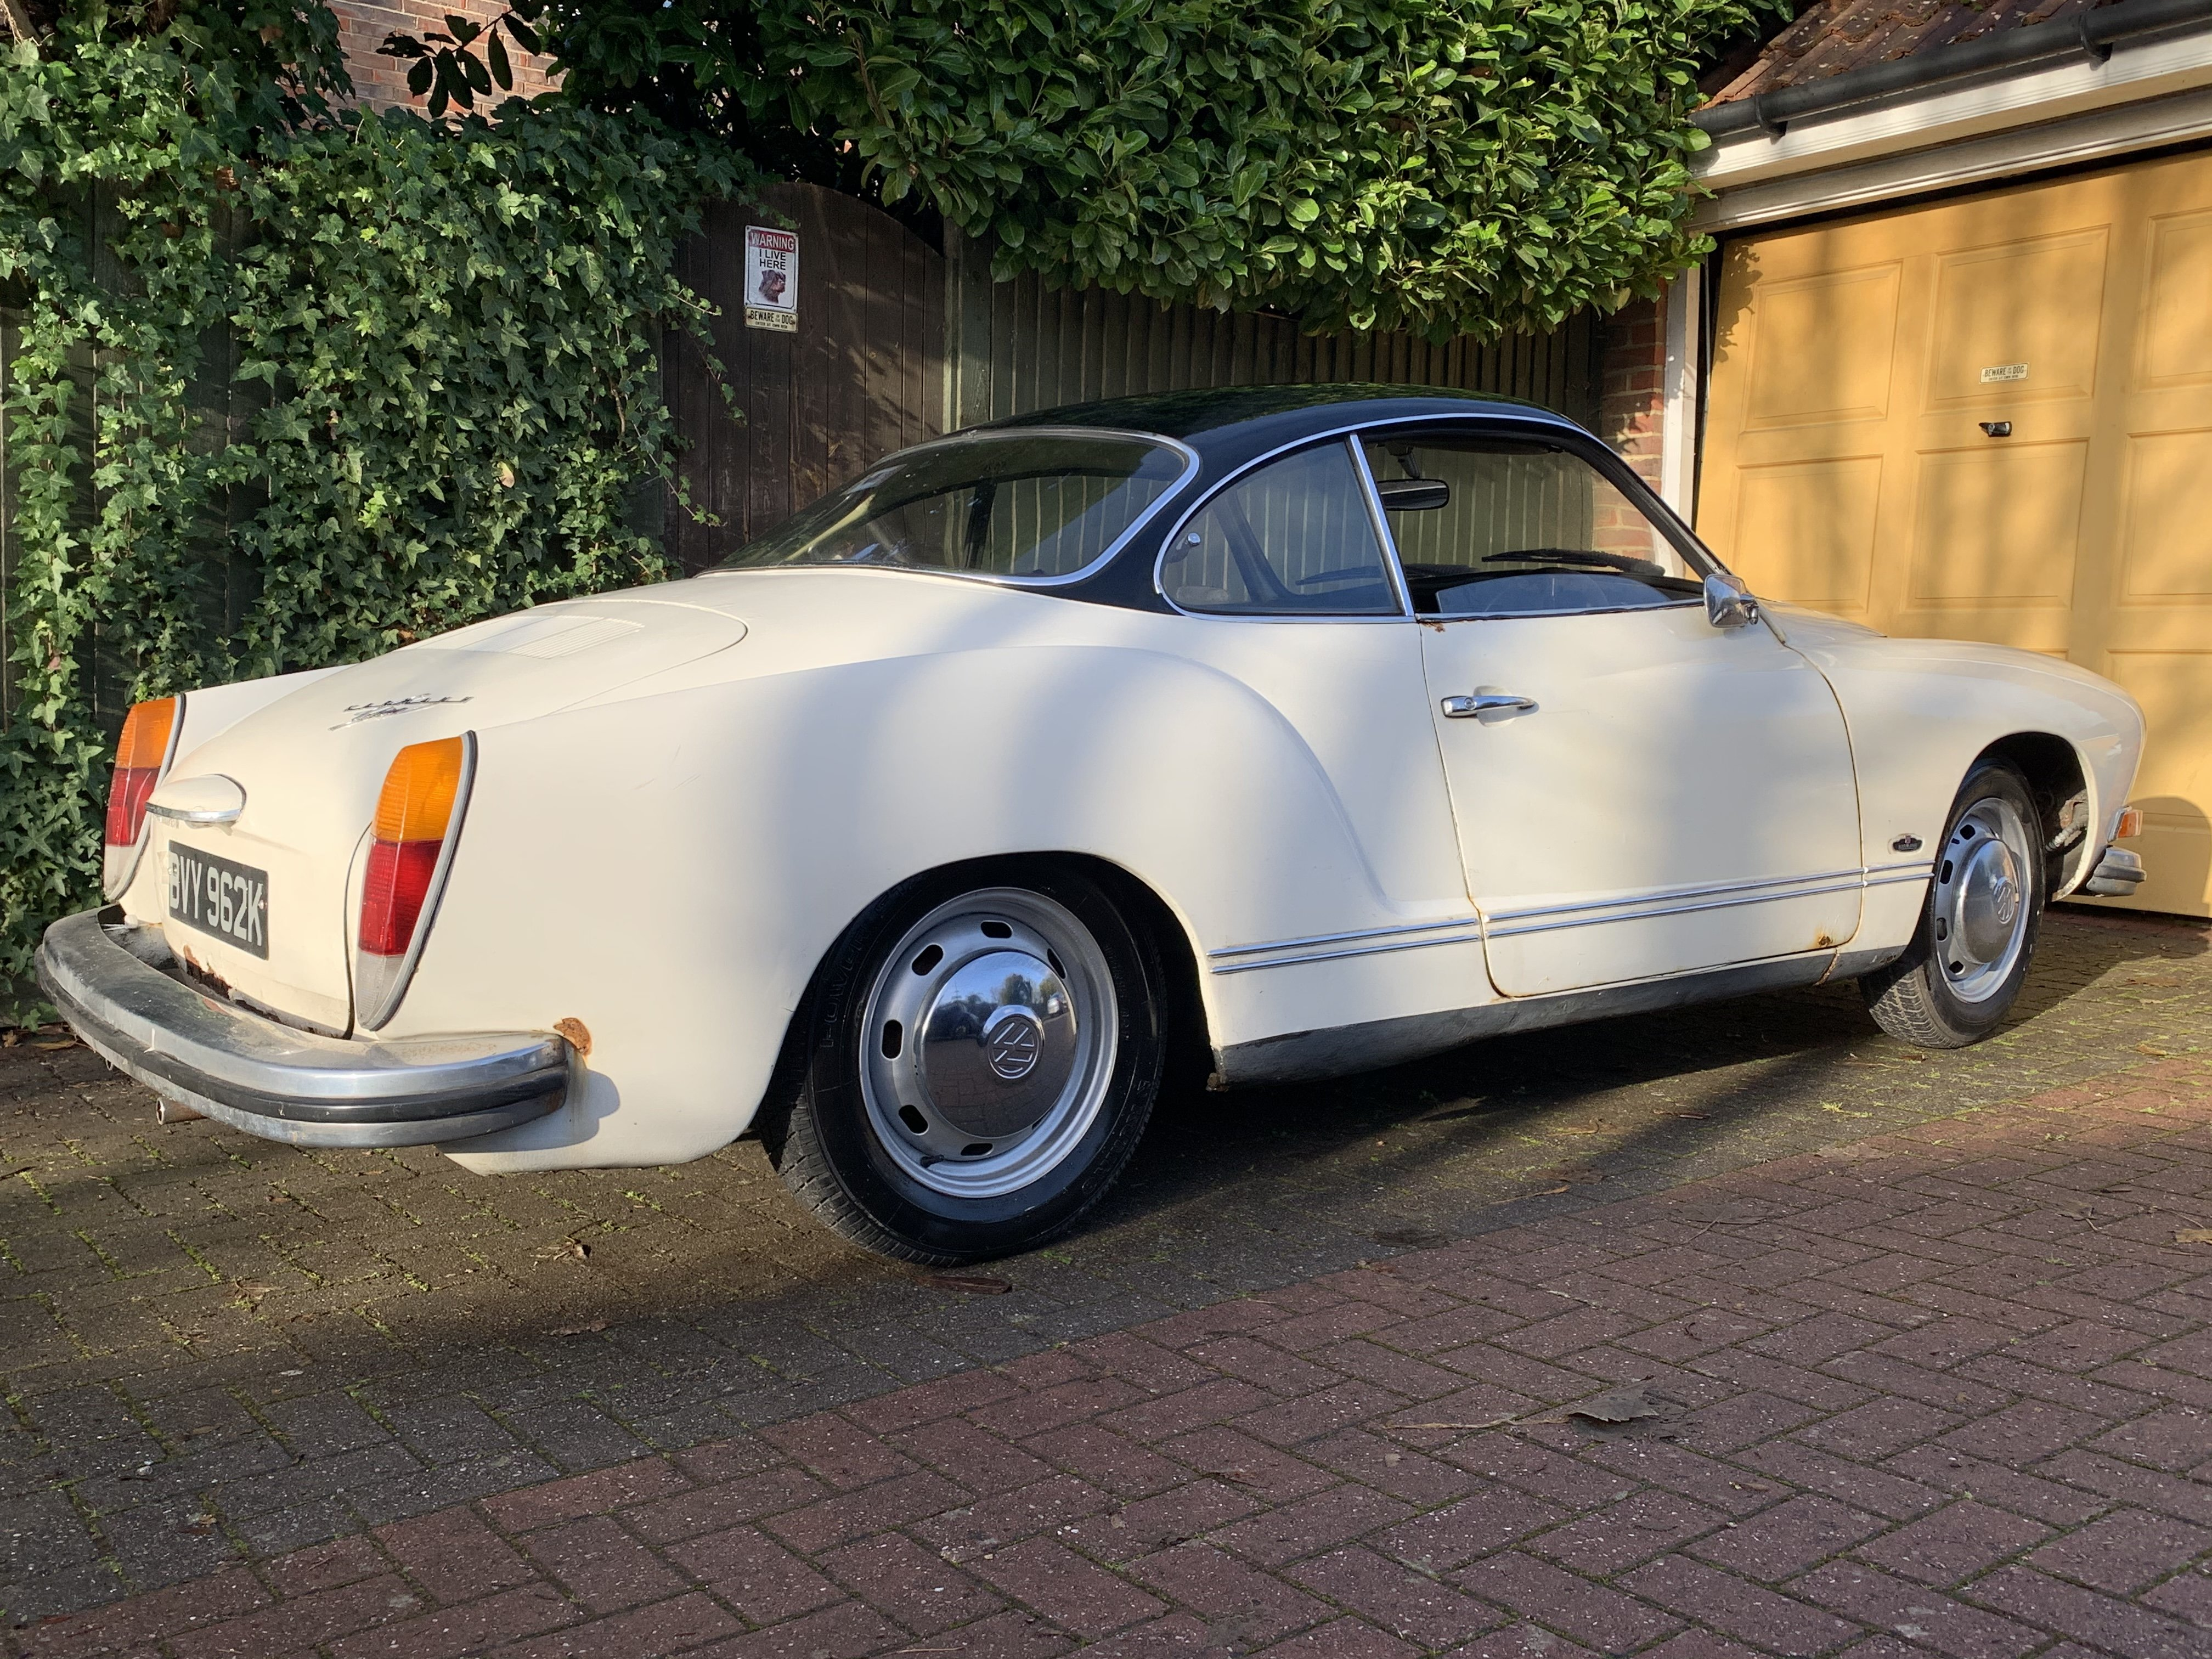 1972 Karmann Ghia Coupe RHD For Sale (picture 8 of 8)